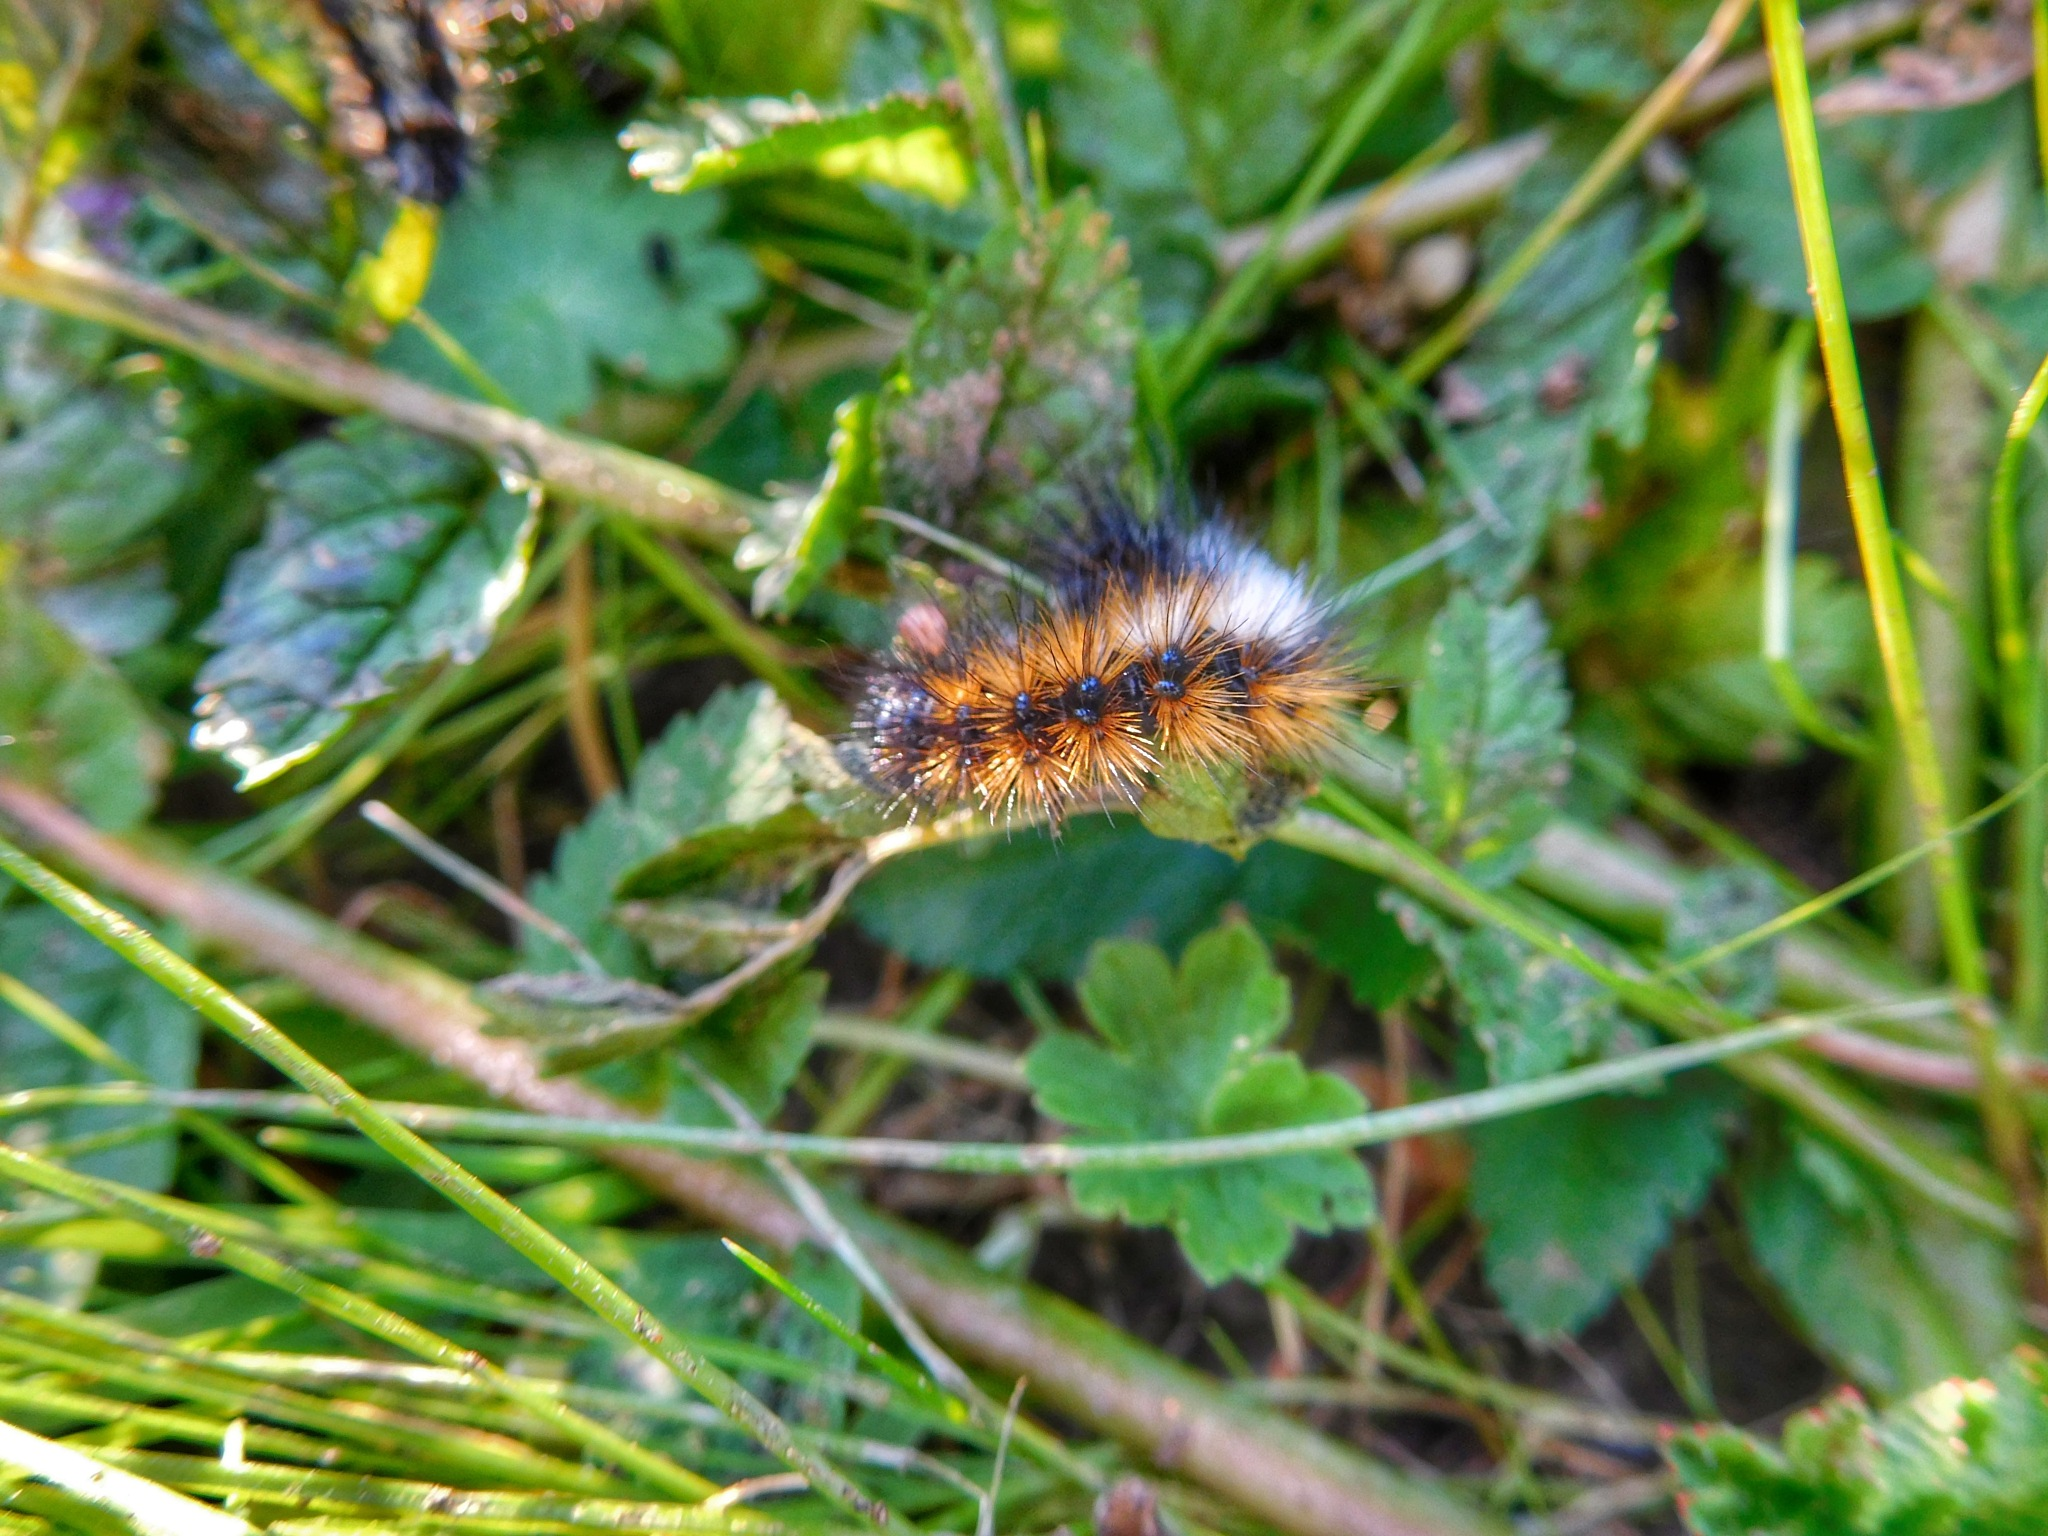 Caterpillar by Luso